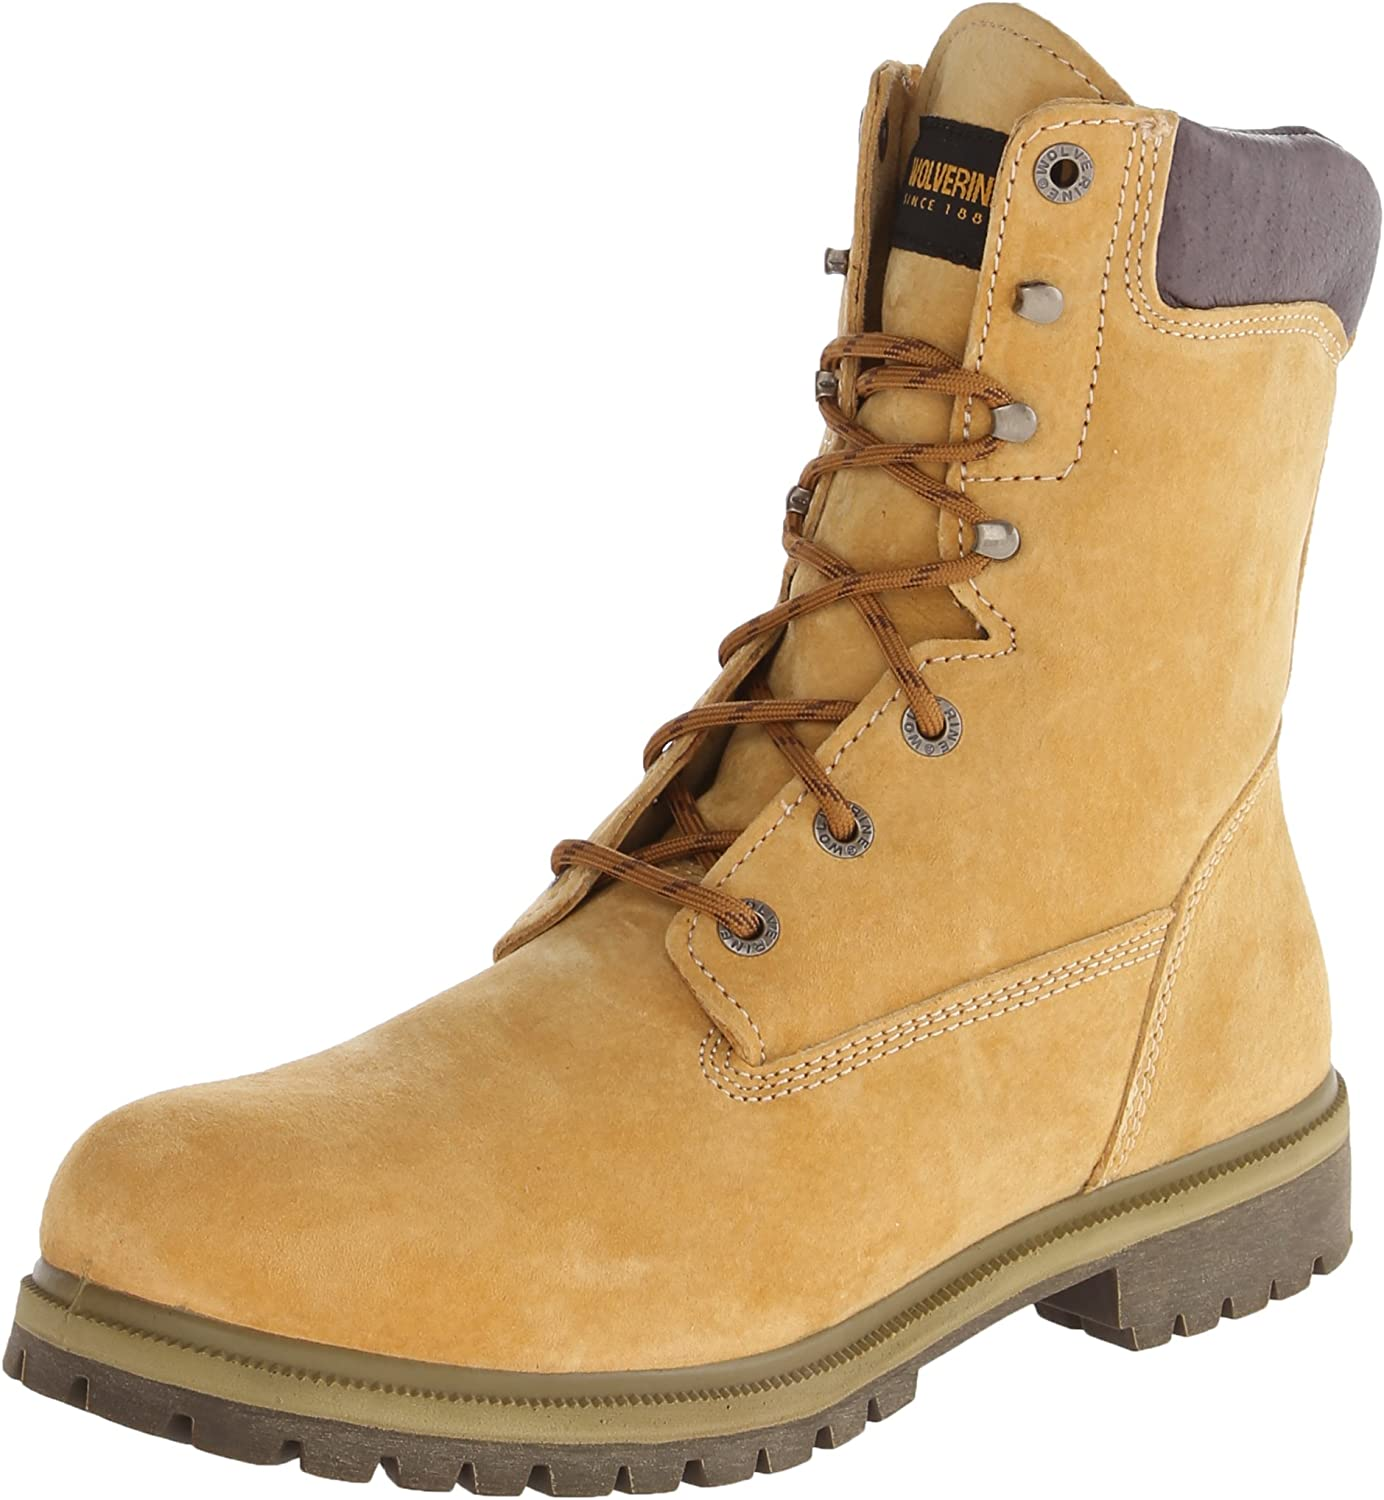 Wolverine Men's Waterproof New product Max 85% OFF Insulated Work 8